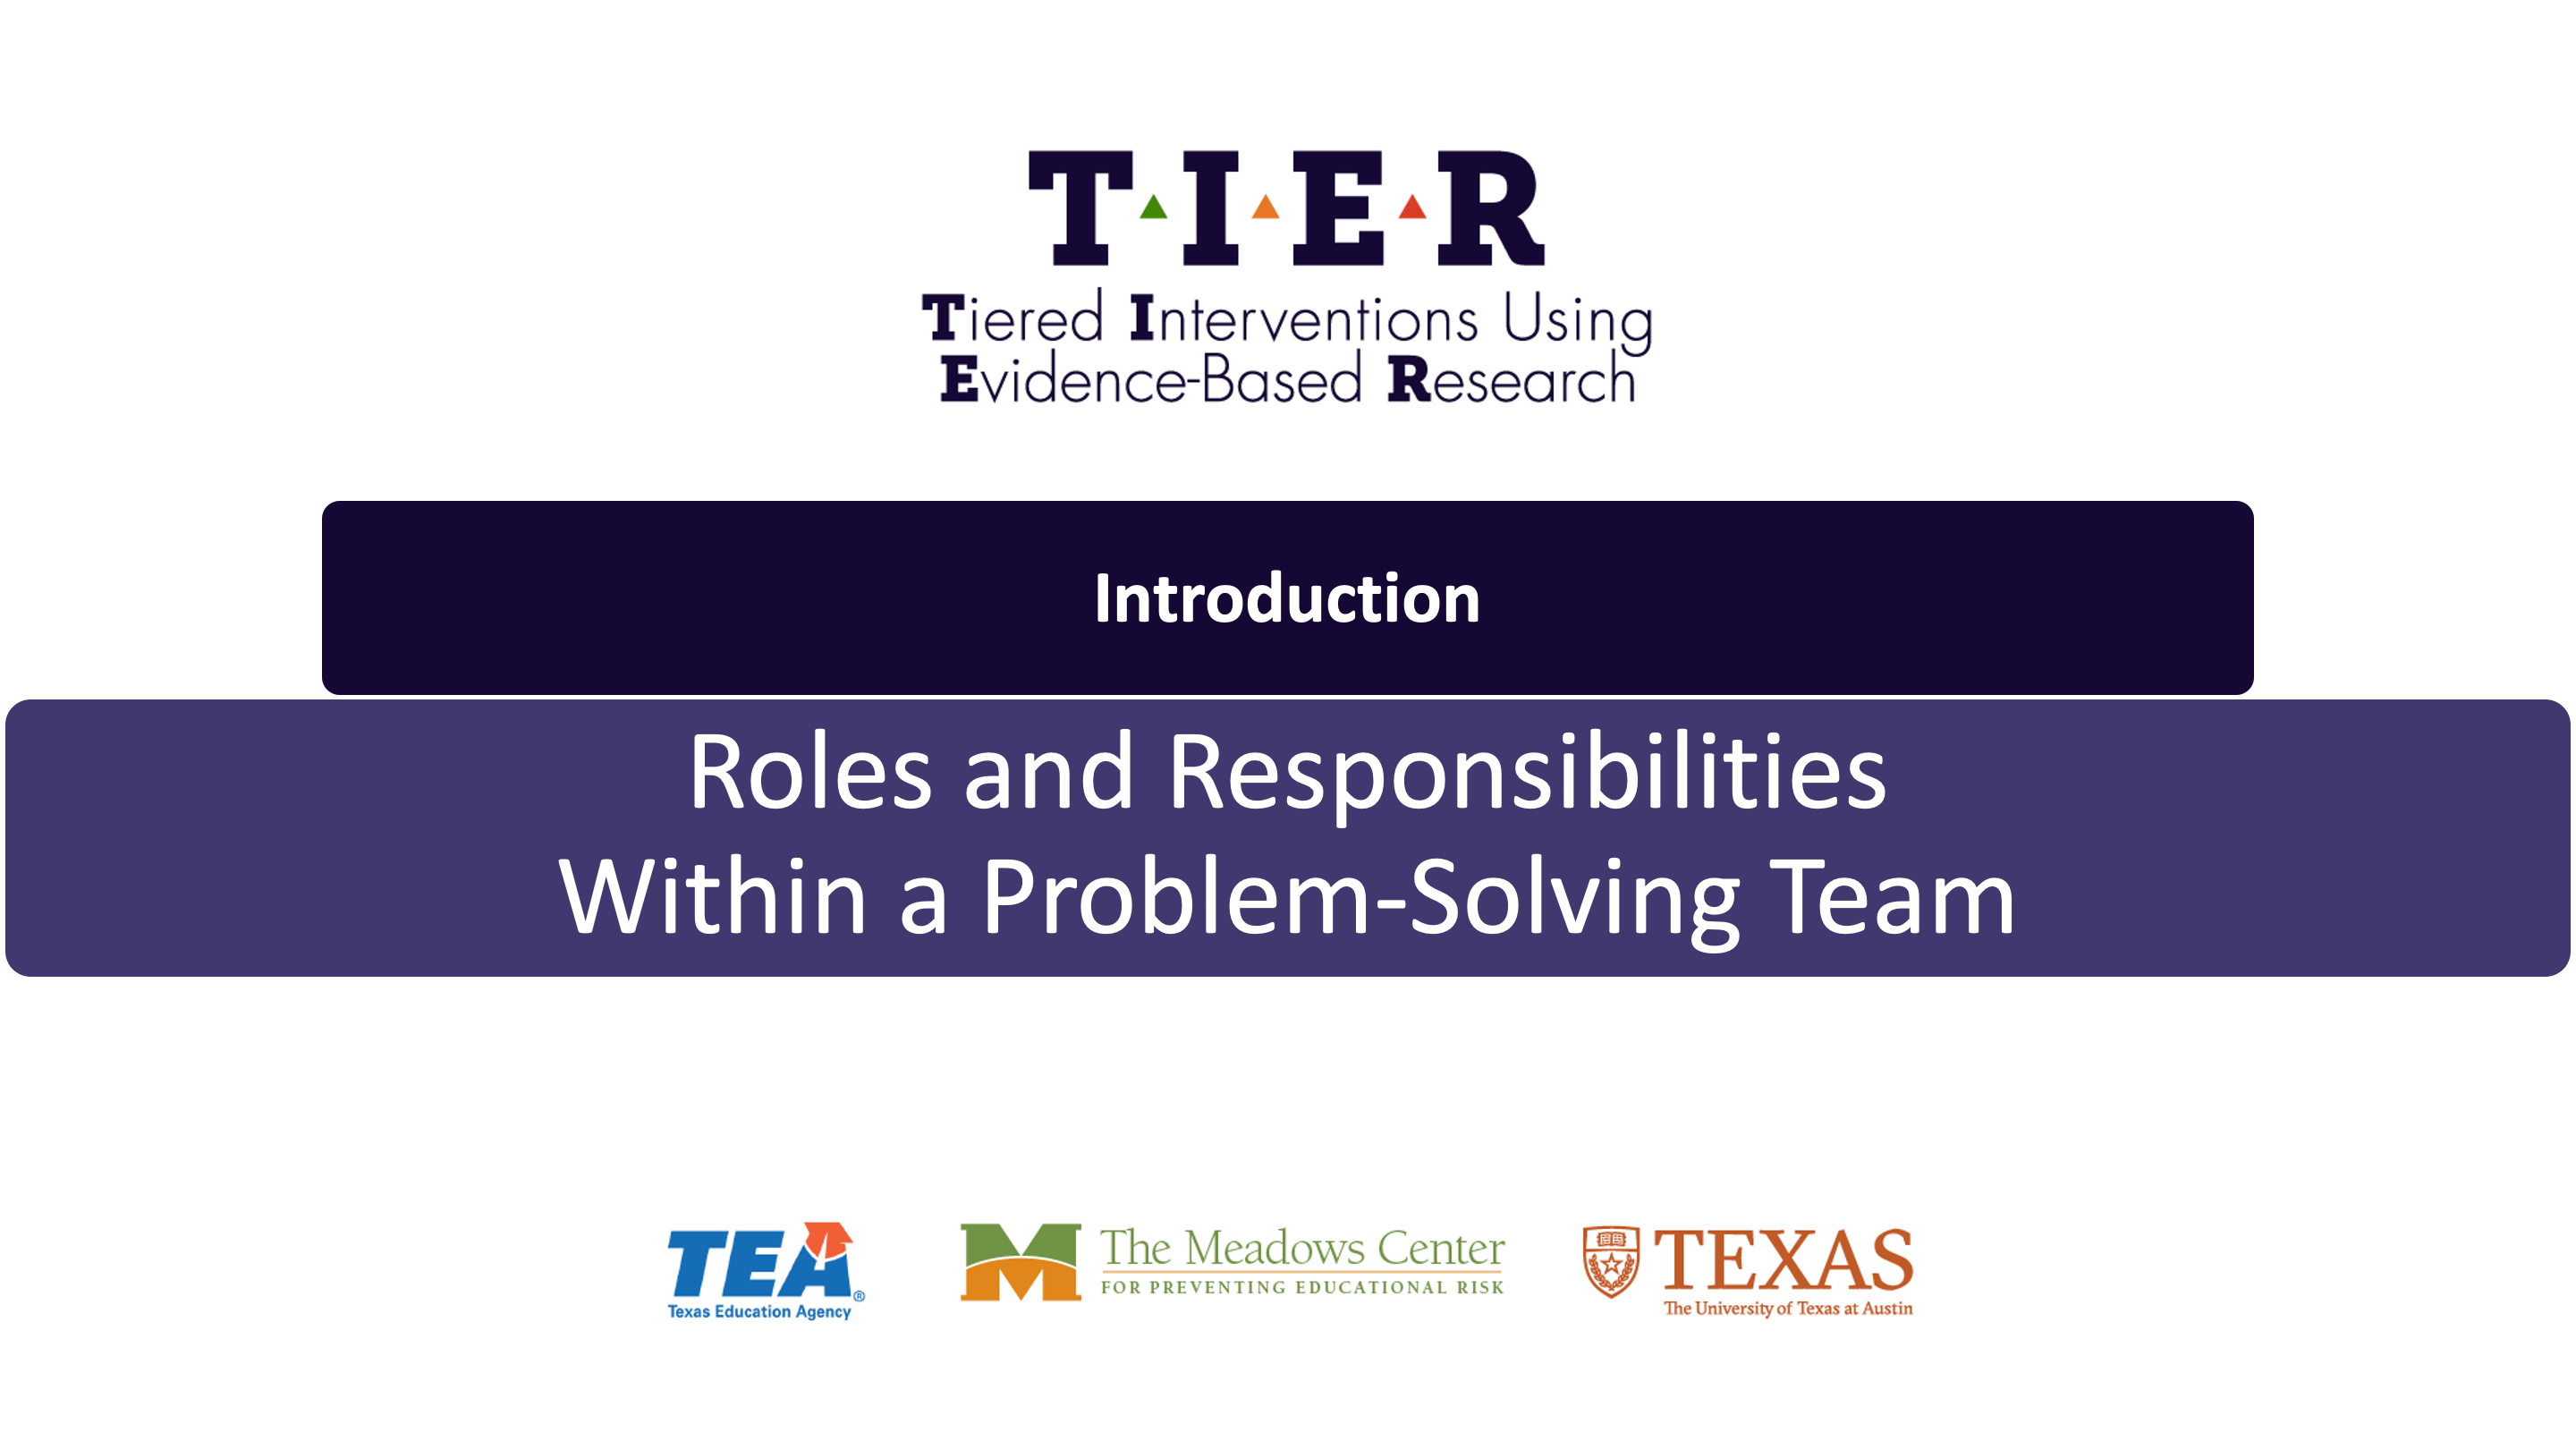 Roles and Responsibilities Within a Problem-Solving Team